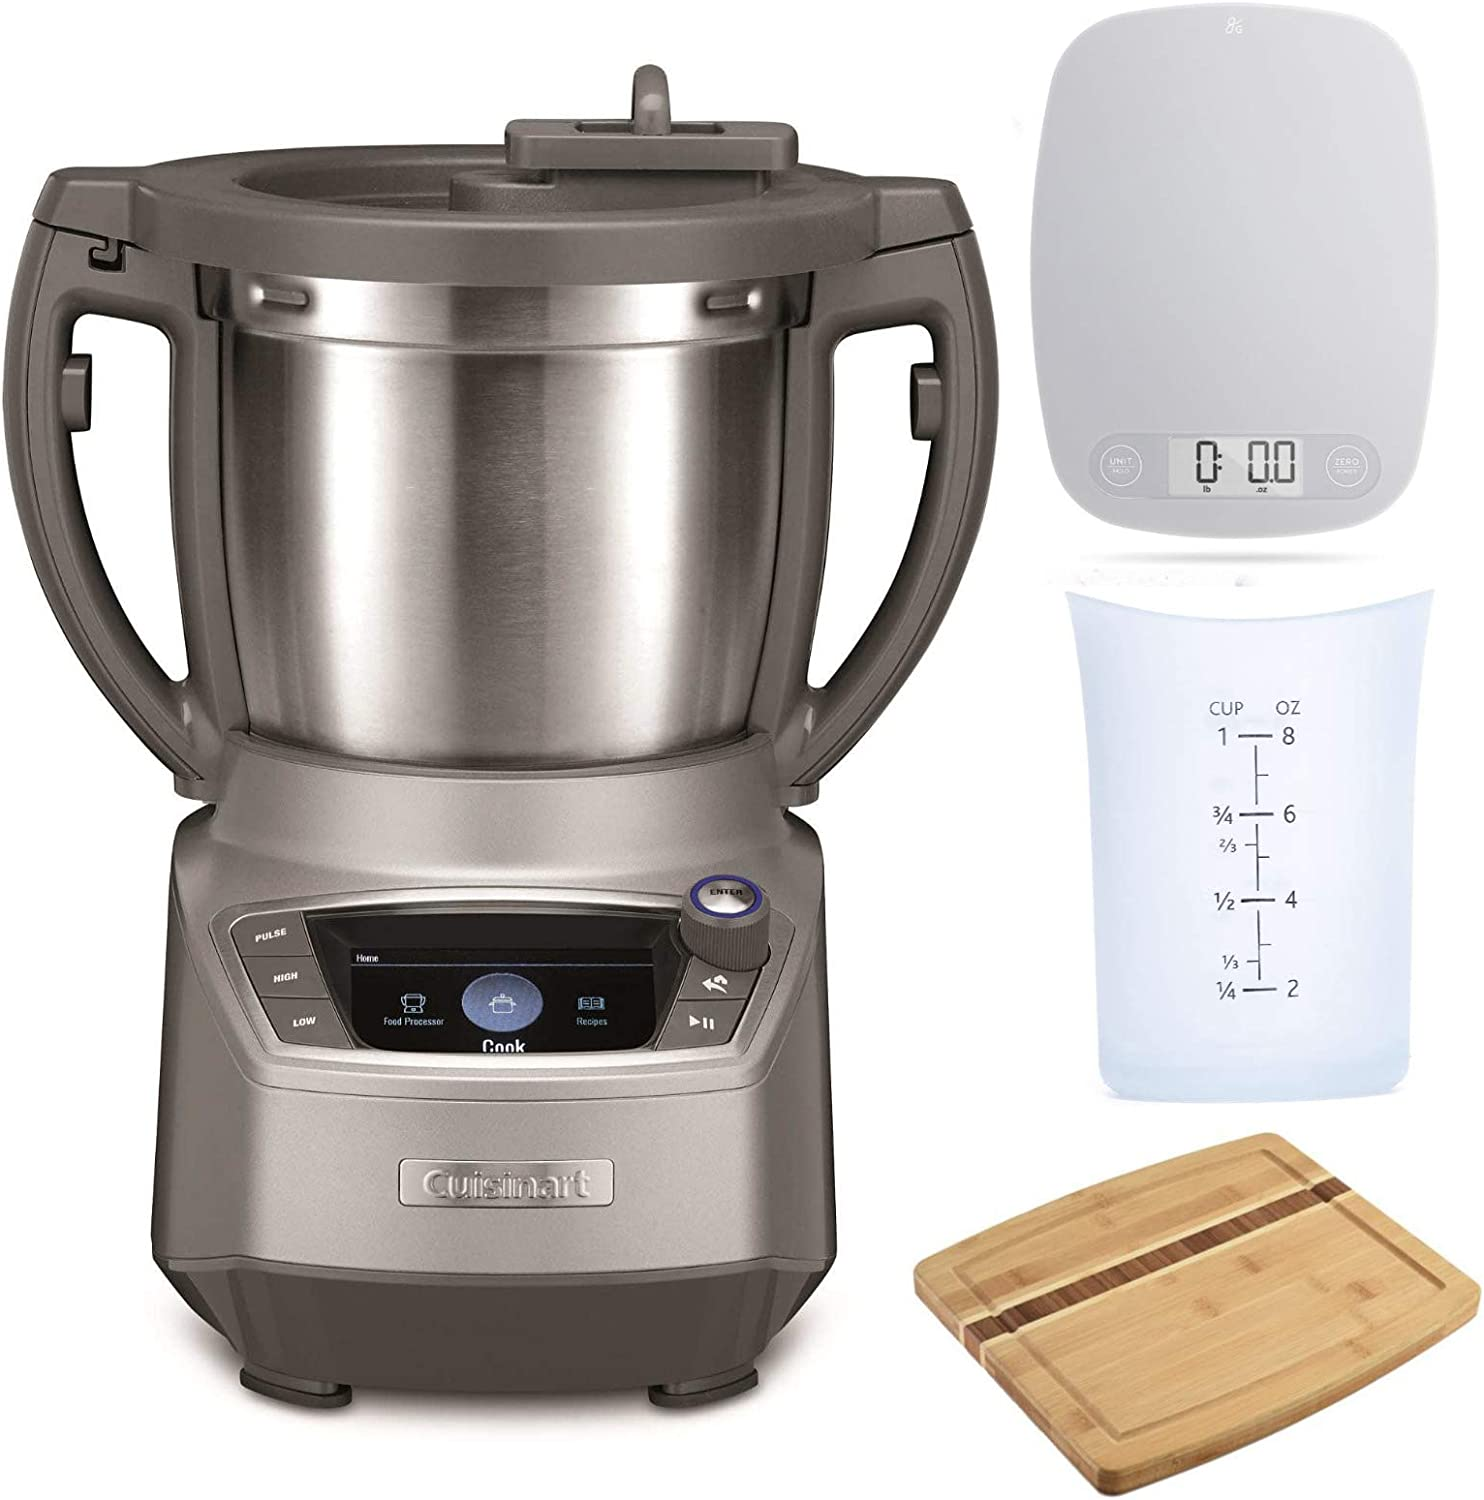 Cuisinart FPC-100 CompleteChef Cooking Food Processor with Measuring Cup, Bamboo Cutting Board and Kitchen Scale Bundle (4 Items)